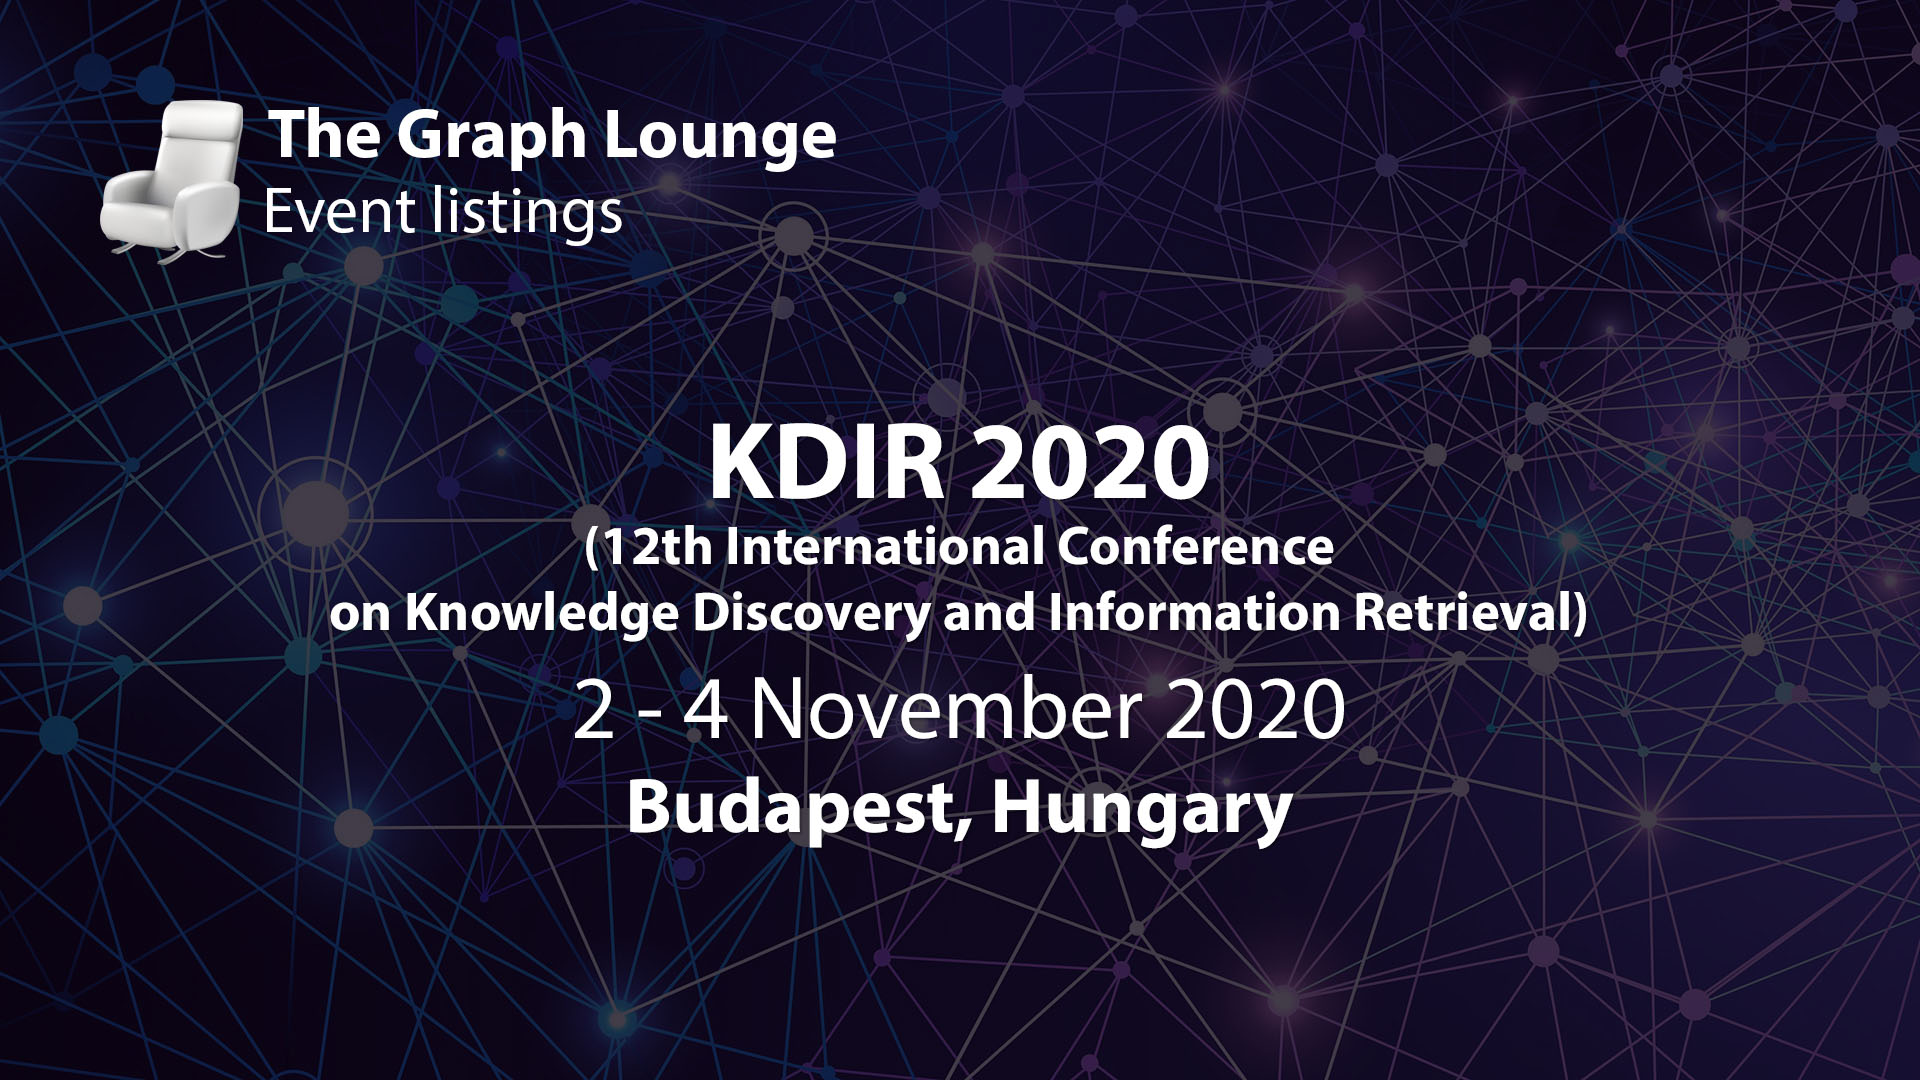 KDIR 2020 (12th International Conference on Knowledge Discovery and Information Retrieval)